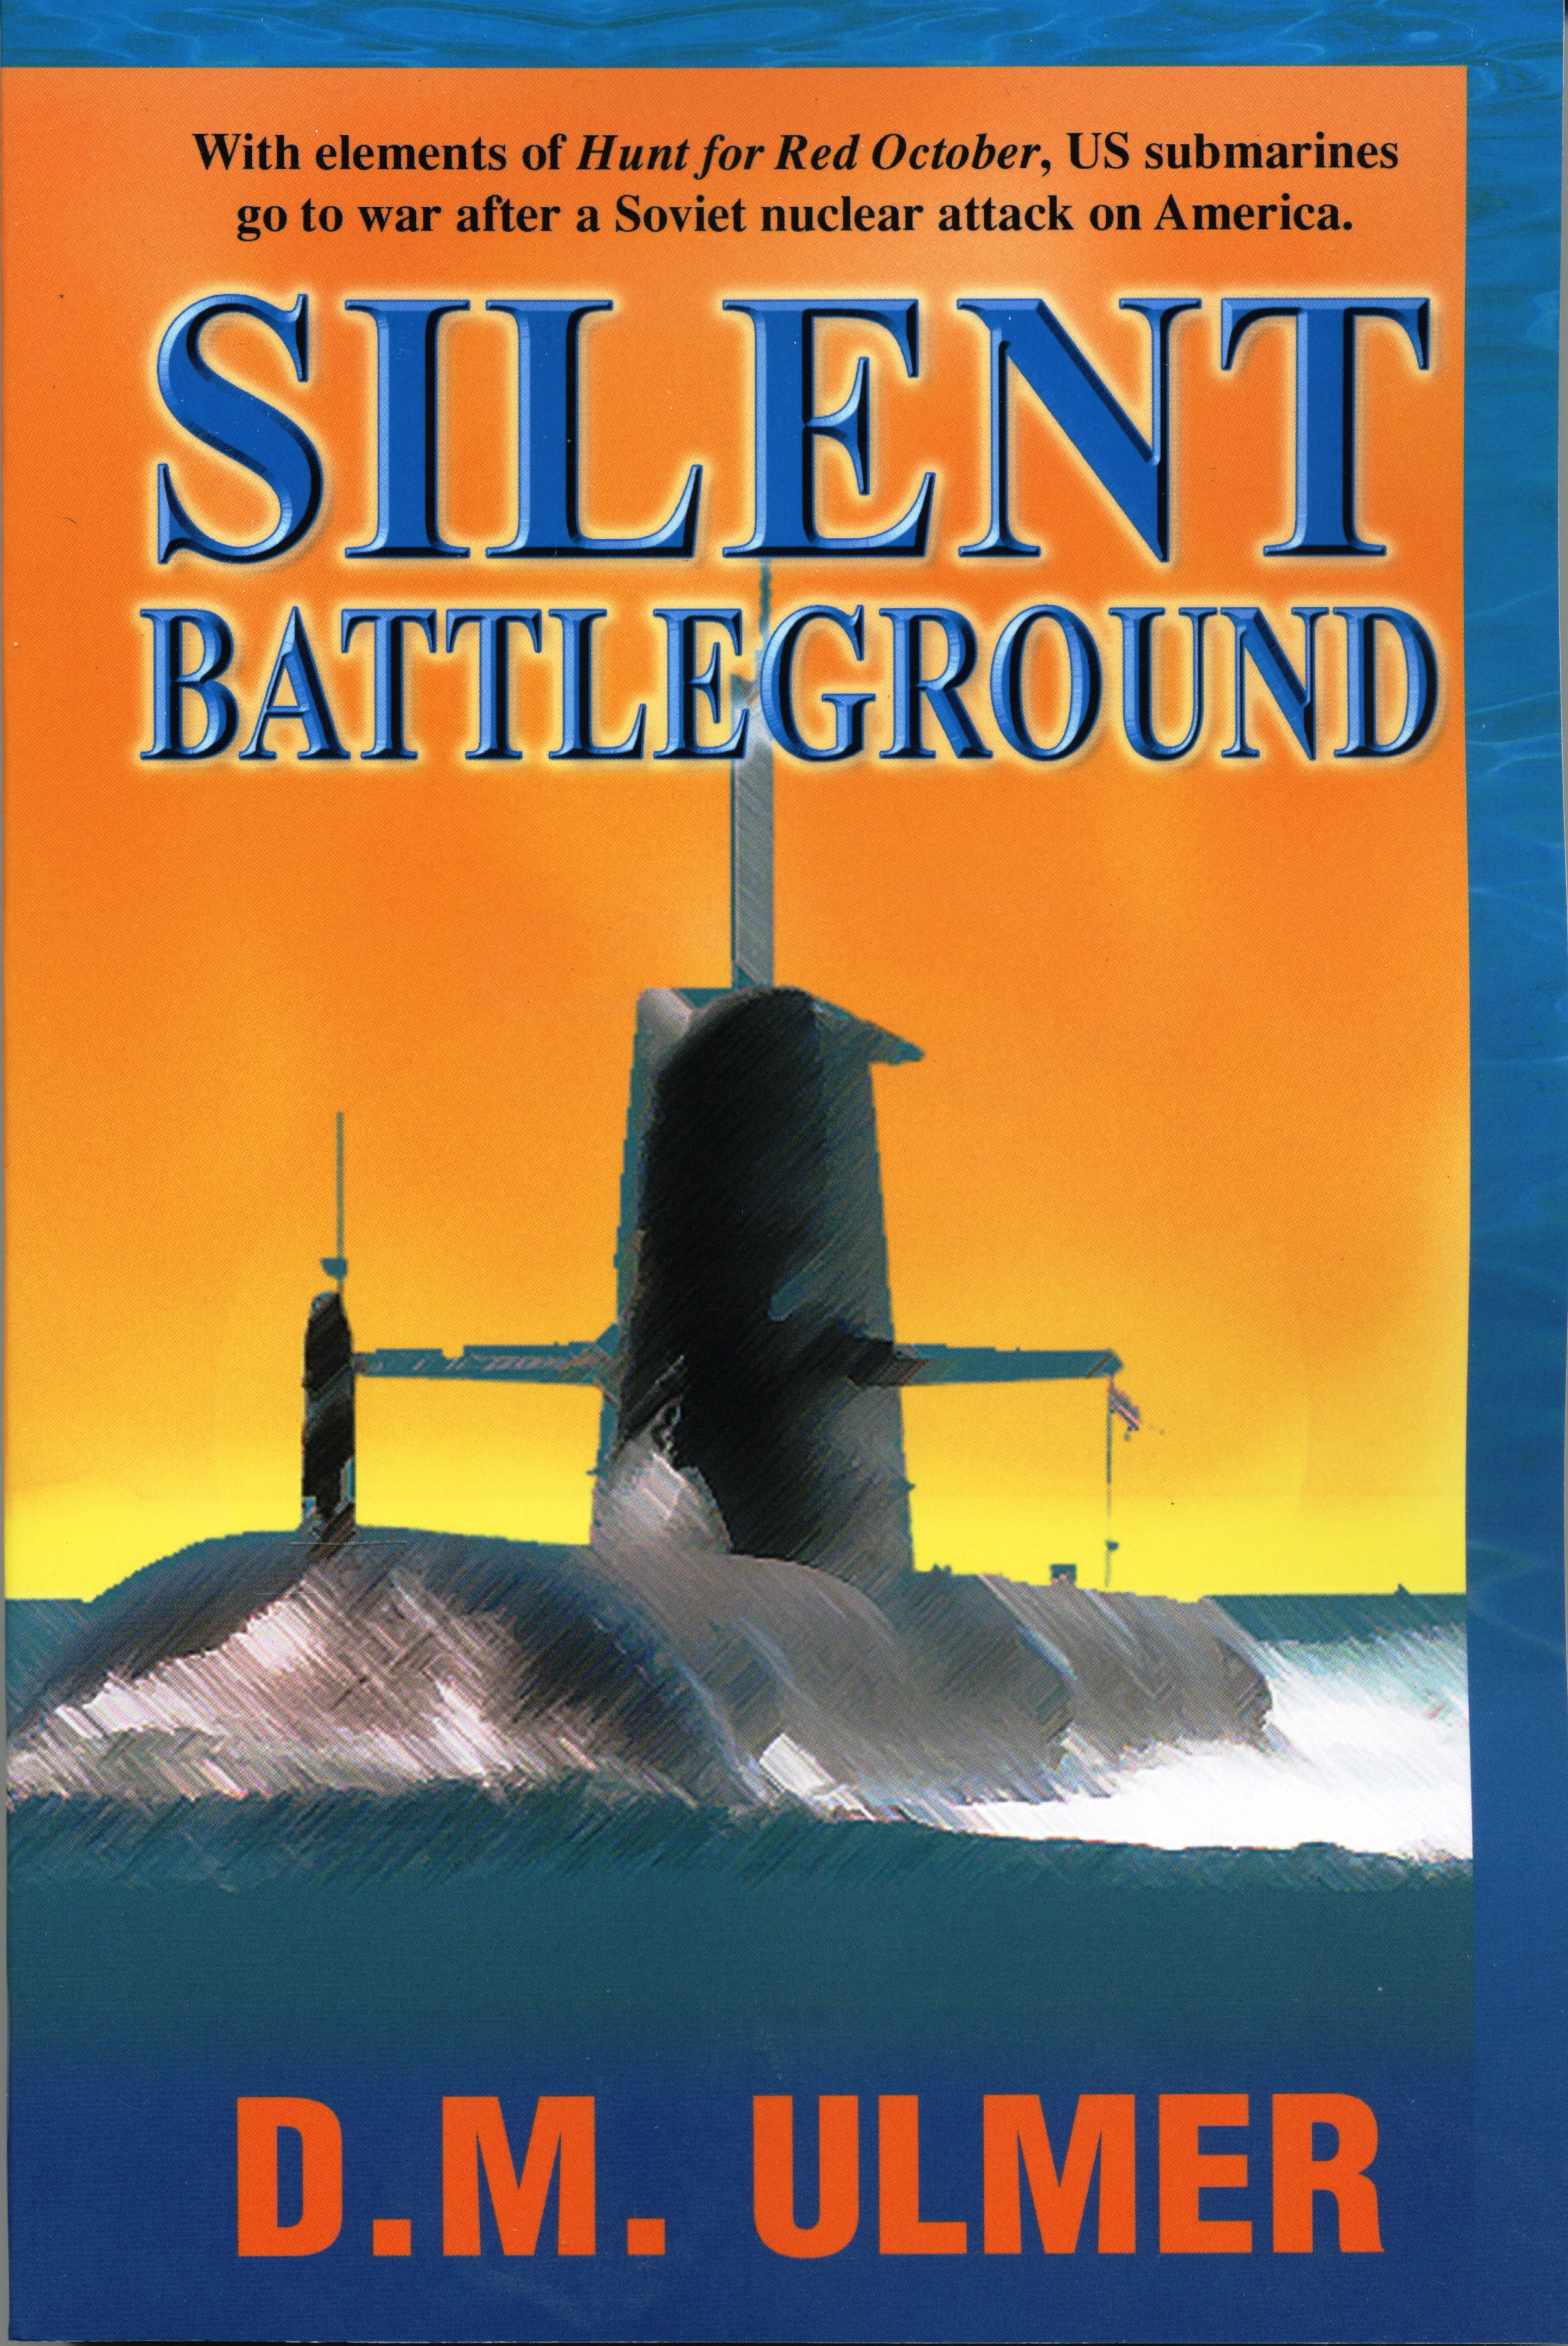 Silent Battleground by D.M. Ulmer